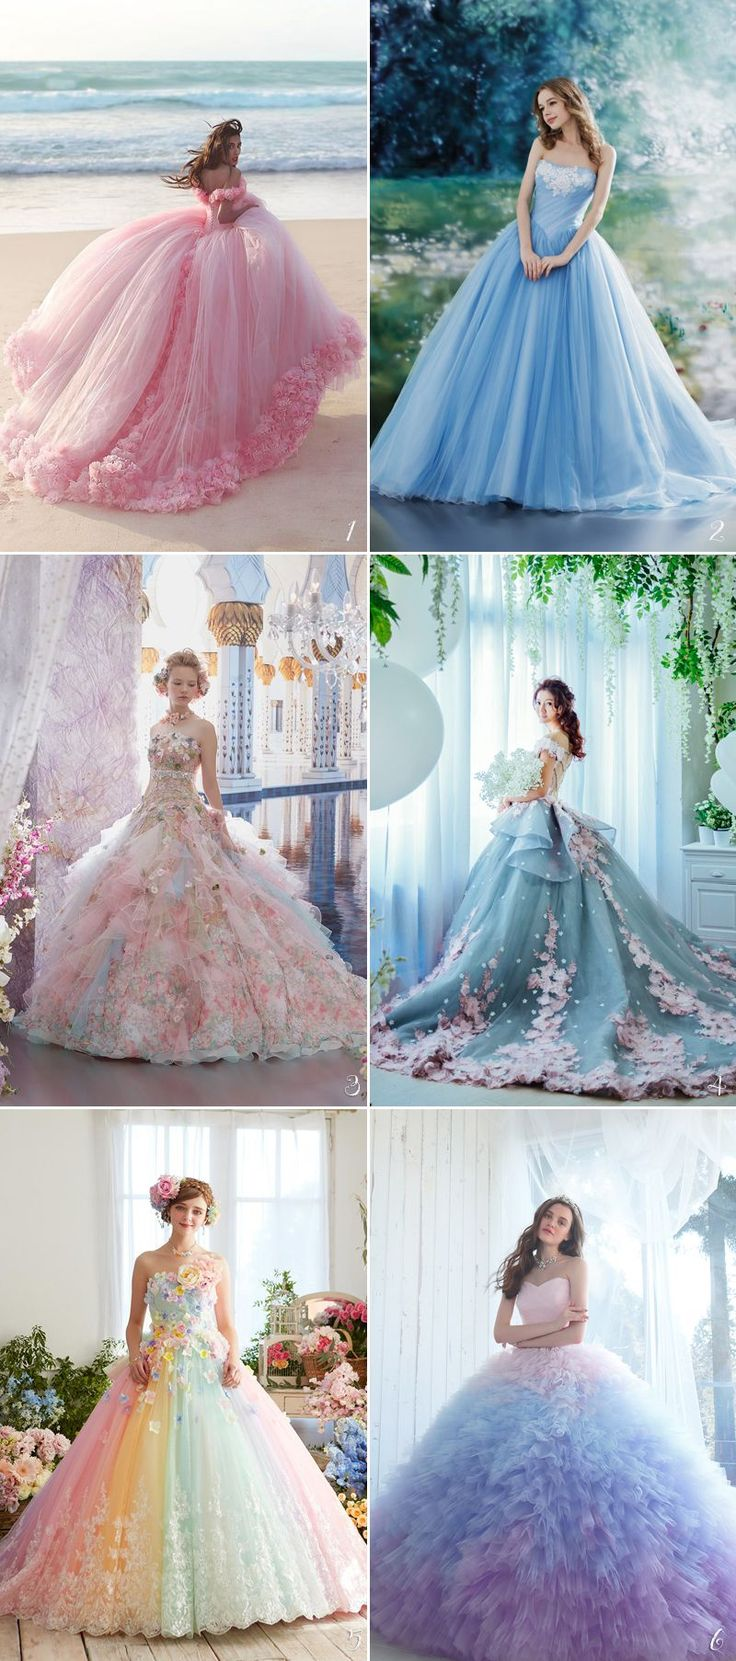 Best 20+ Ball gown ideas on Pinterest | Ball gowns, Amazing prom ...